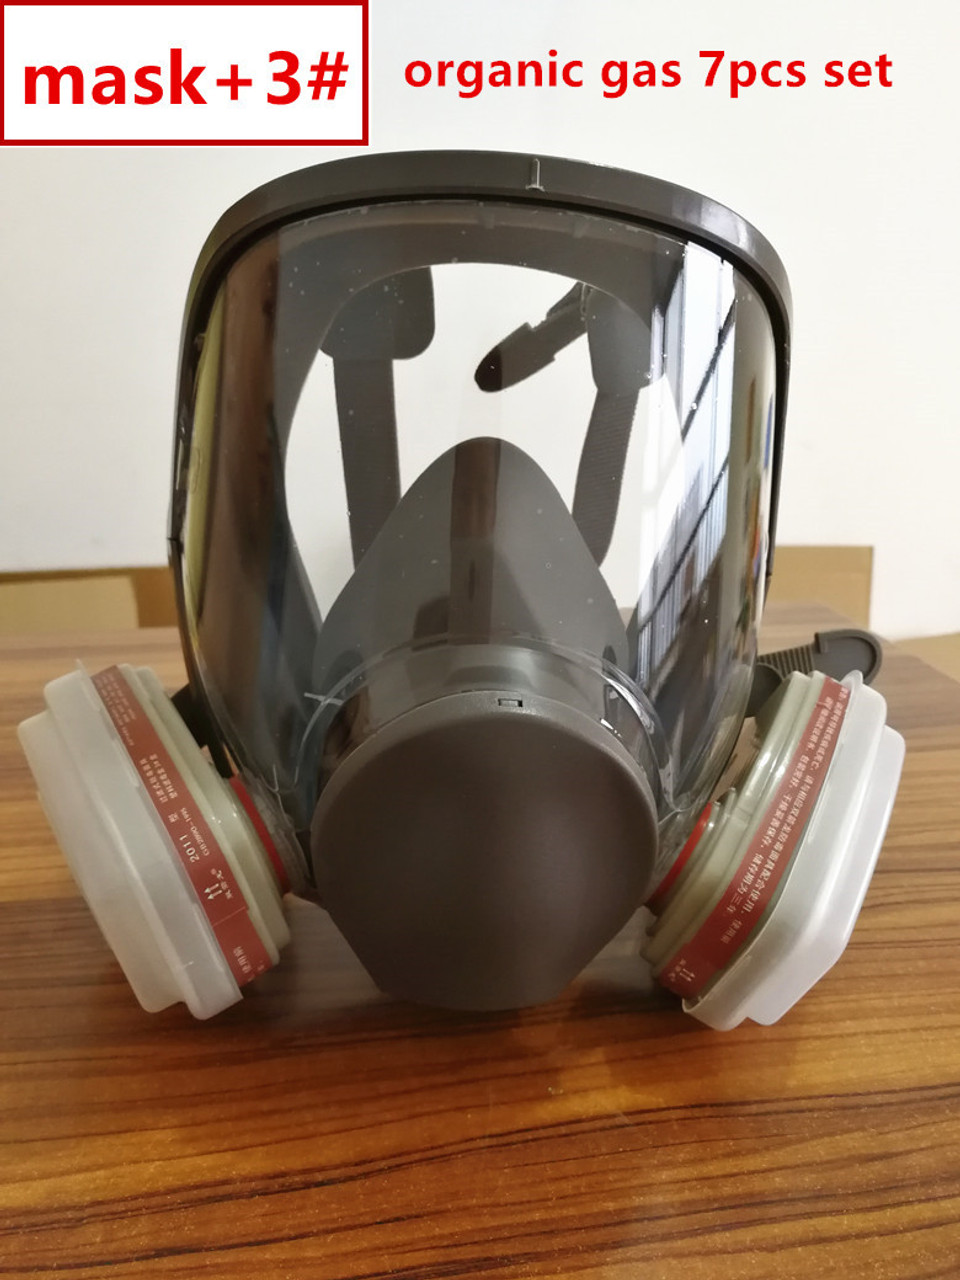 Back To Search Resultshome & Garden Cheap Price For 6800 Silicone Gas Mask Full Face Facepiece Respirator Painting Spraying Free Shipping Latest Technology Event & Party